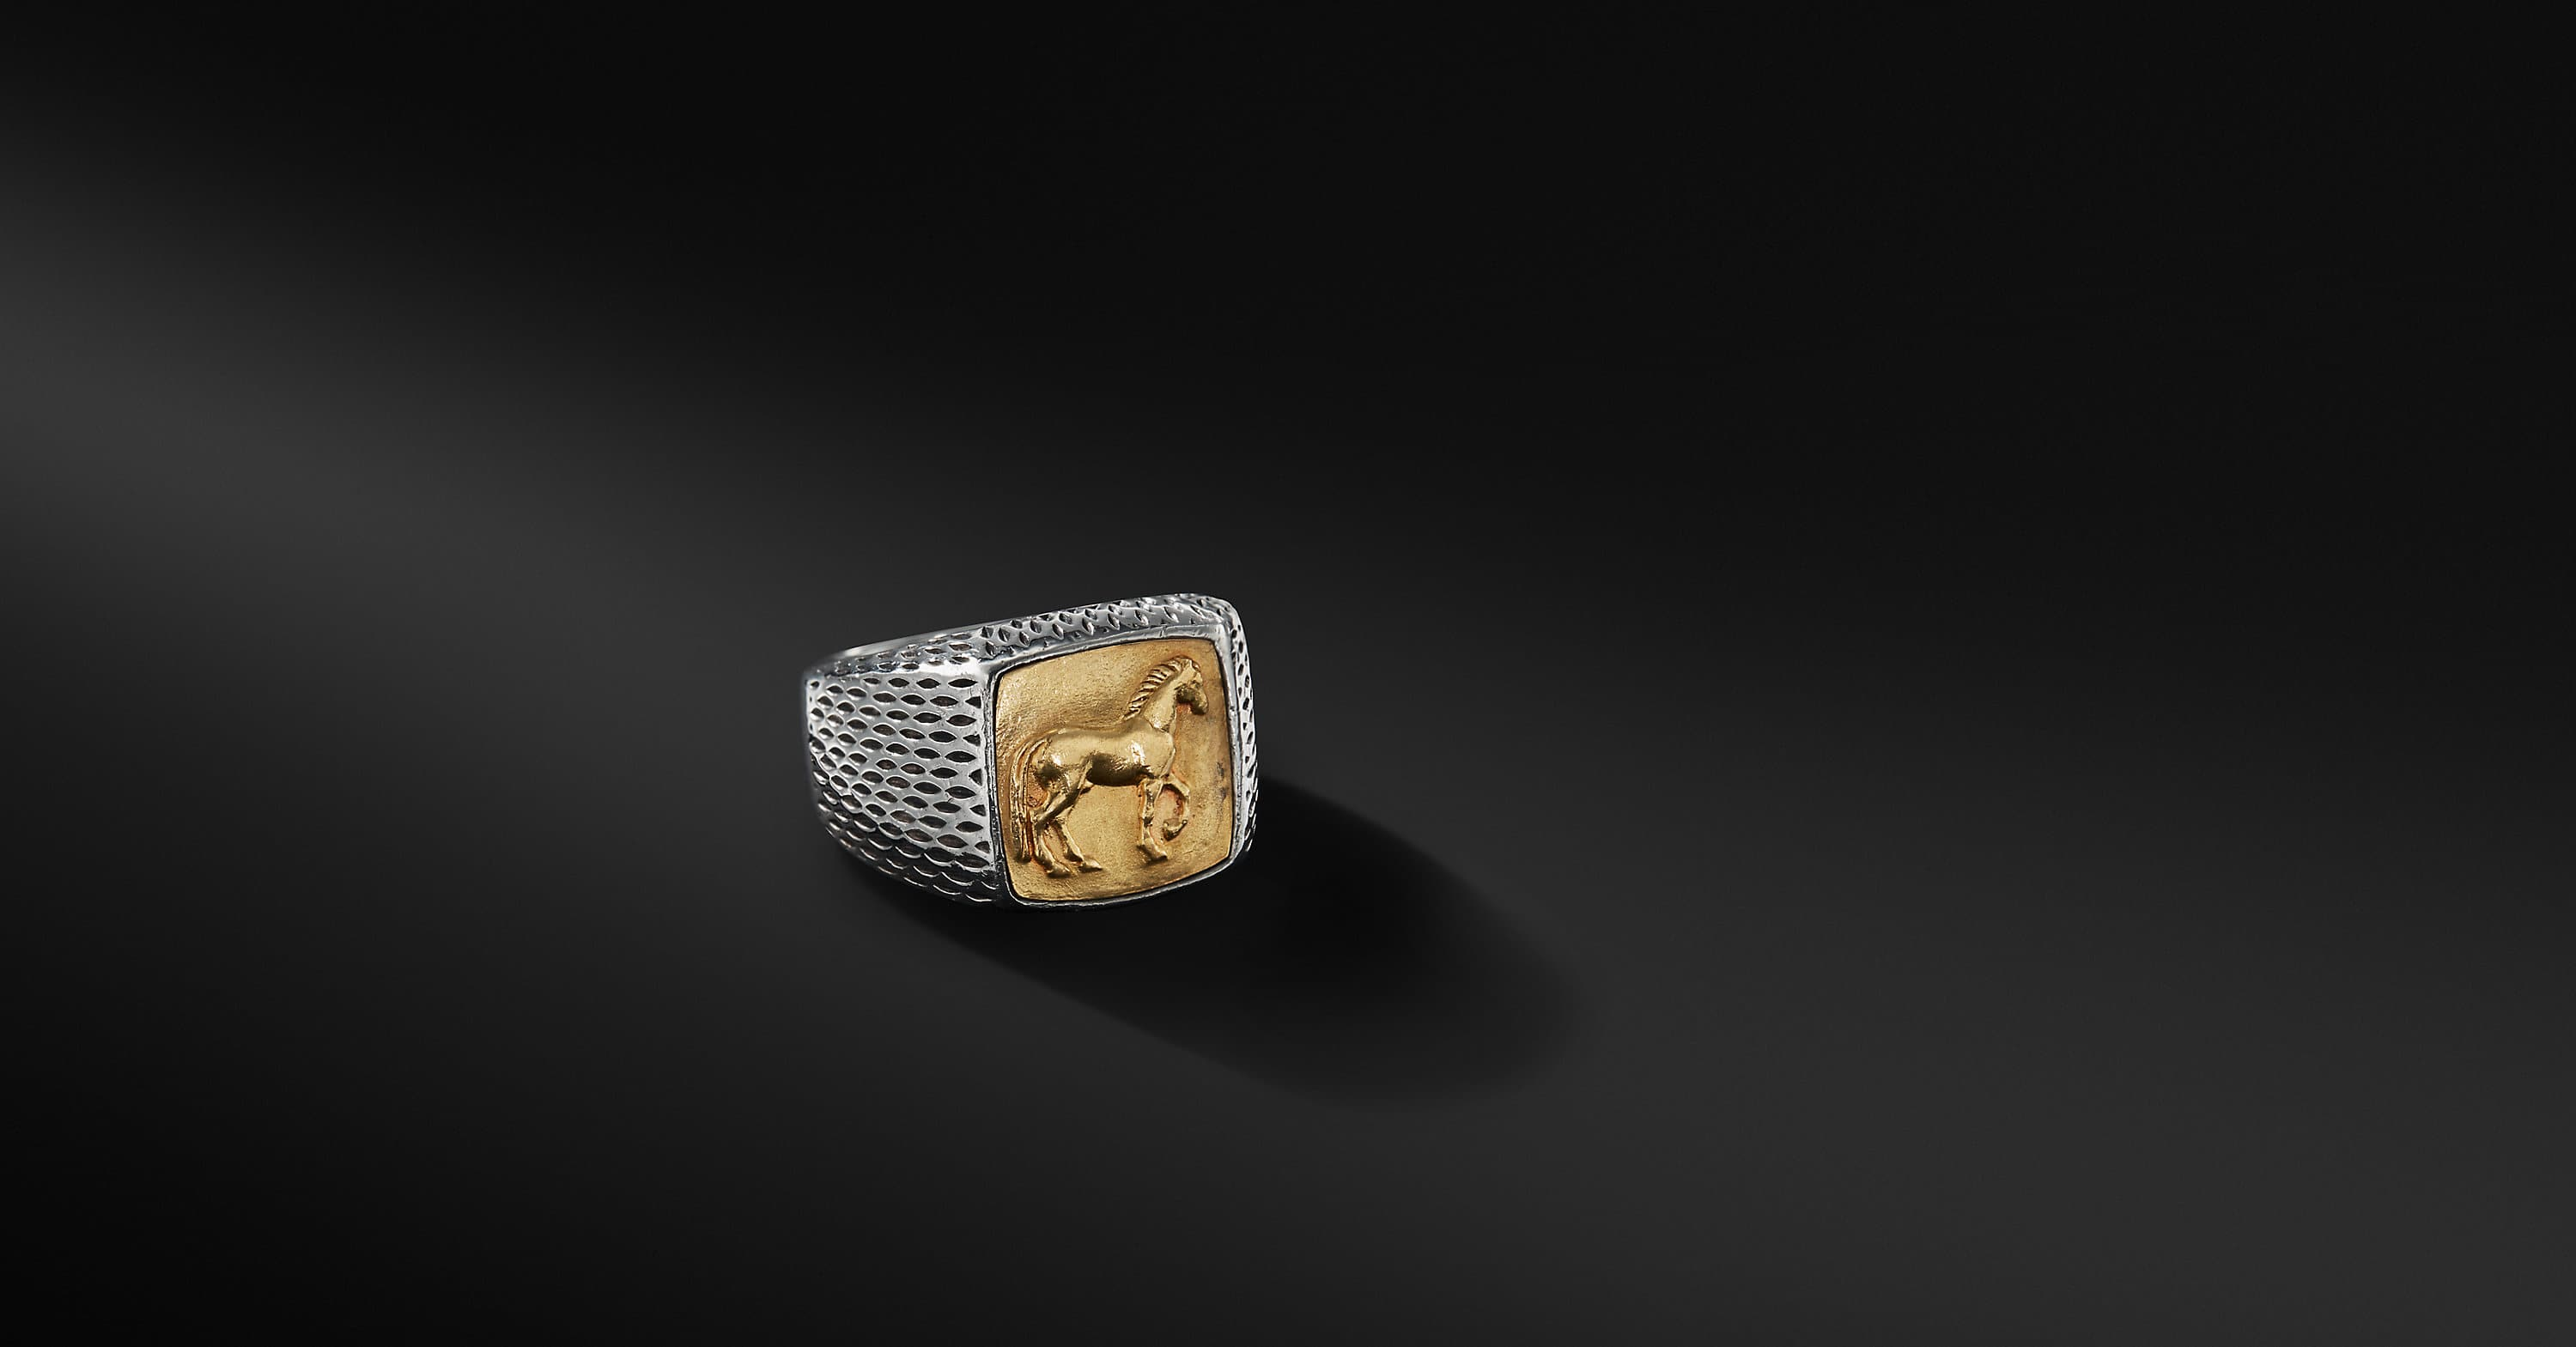 Petrvs Horse Signet Ring with 22K Gold